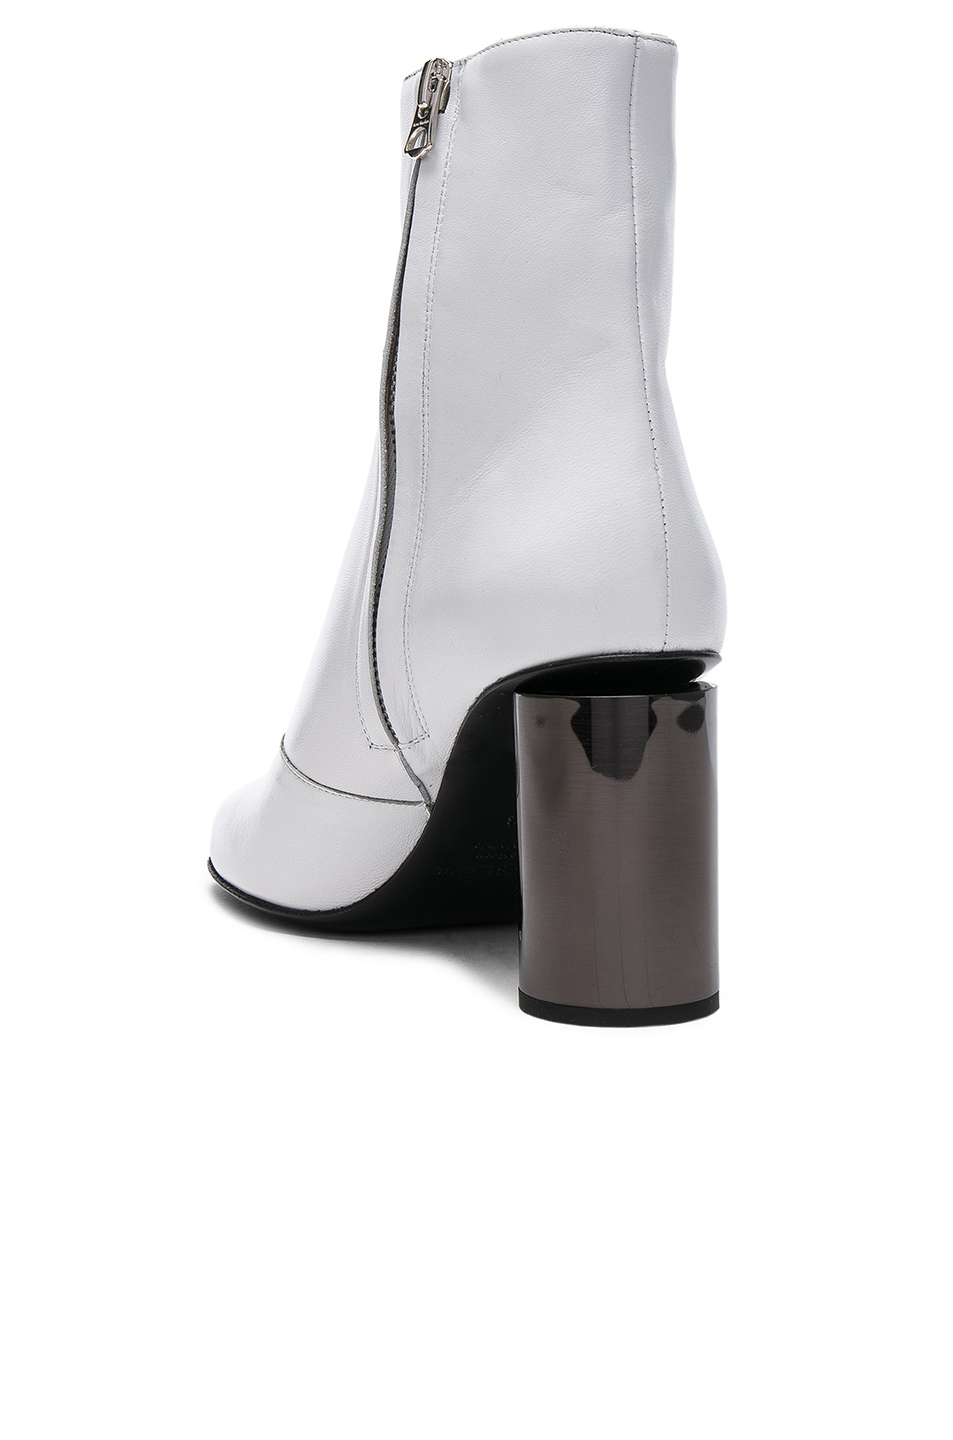 62be8316dd2e3 Image 3 of Acne Studios Leather Allis Boots in White   Black